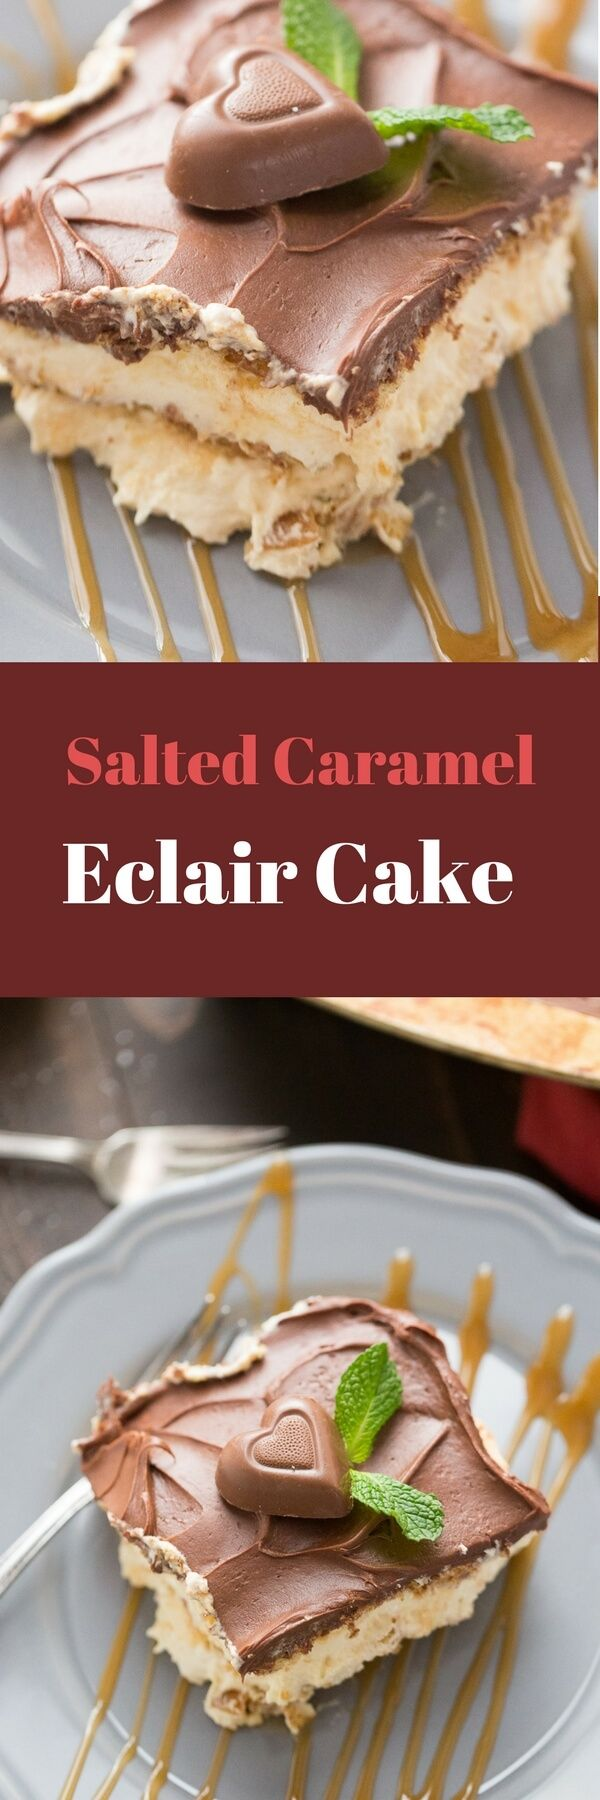 This no bake eclair cake is one of those crowd pleasing desserts that will always be the first to go! The best part is how simple it is to make!